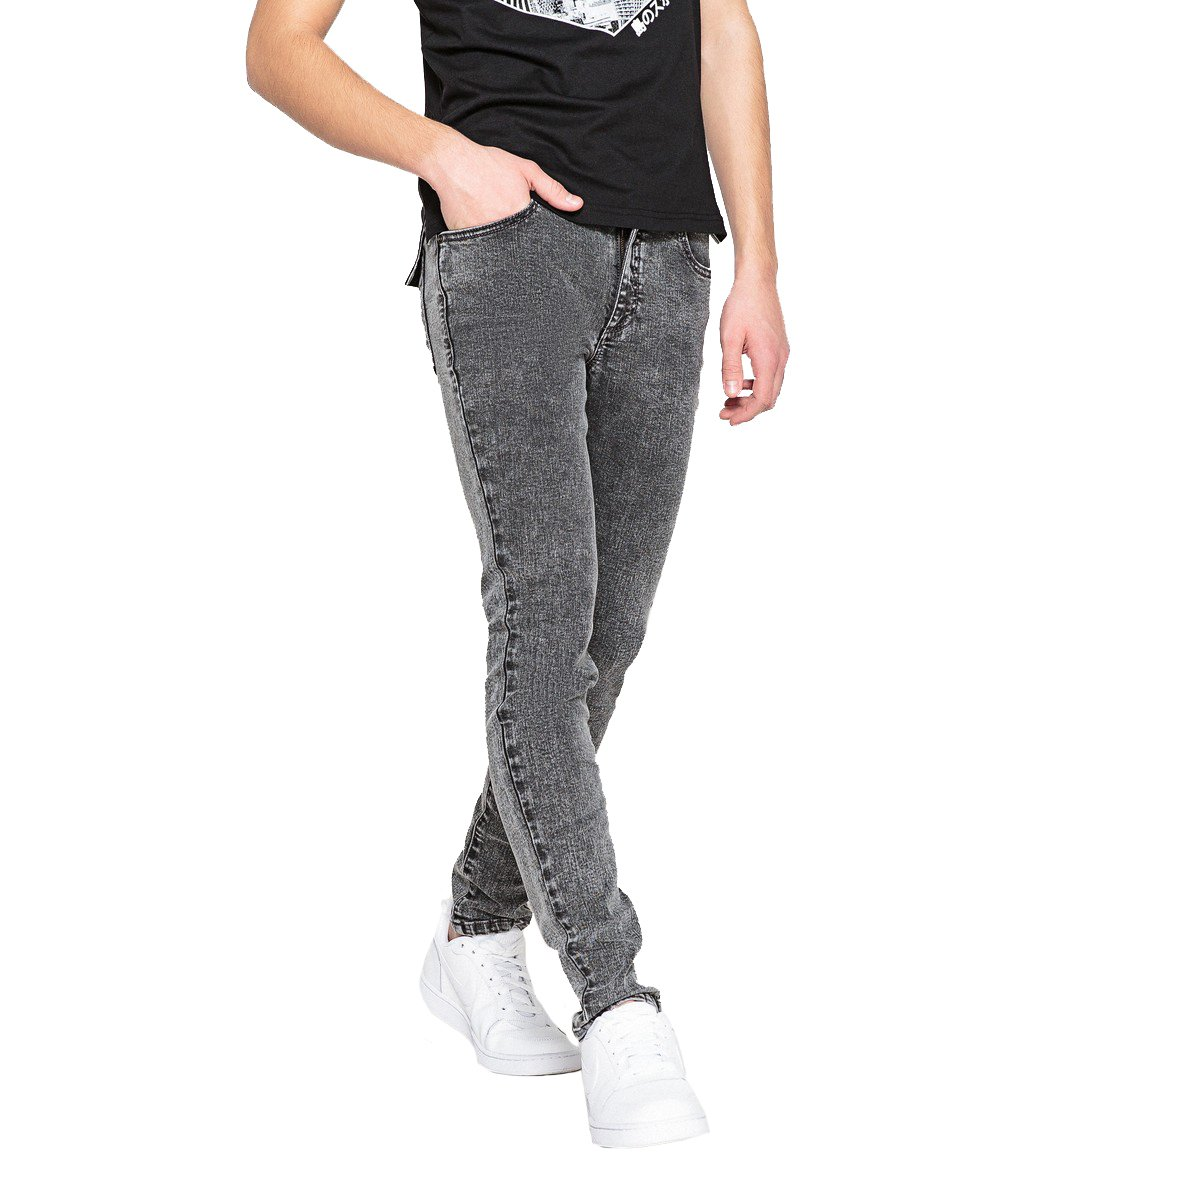 La Redoute Collections Bambino Jeans Skinny Neve 1016 Anni 350092670